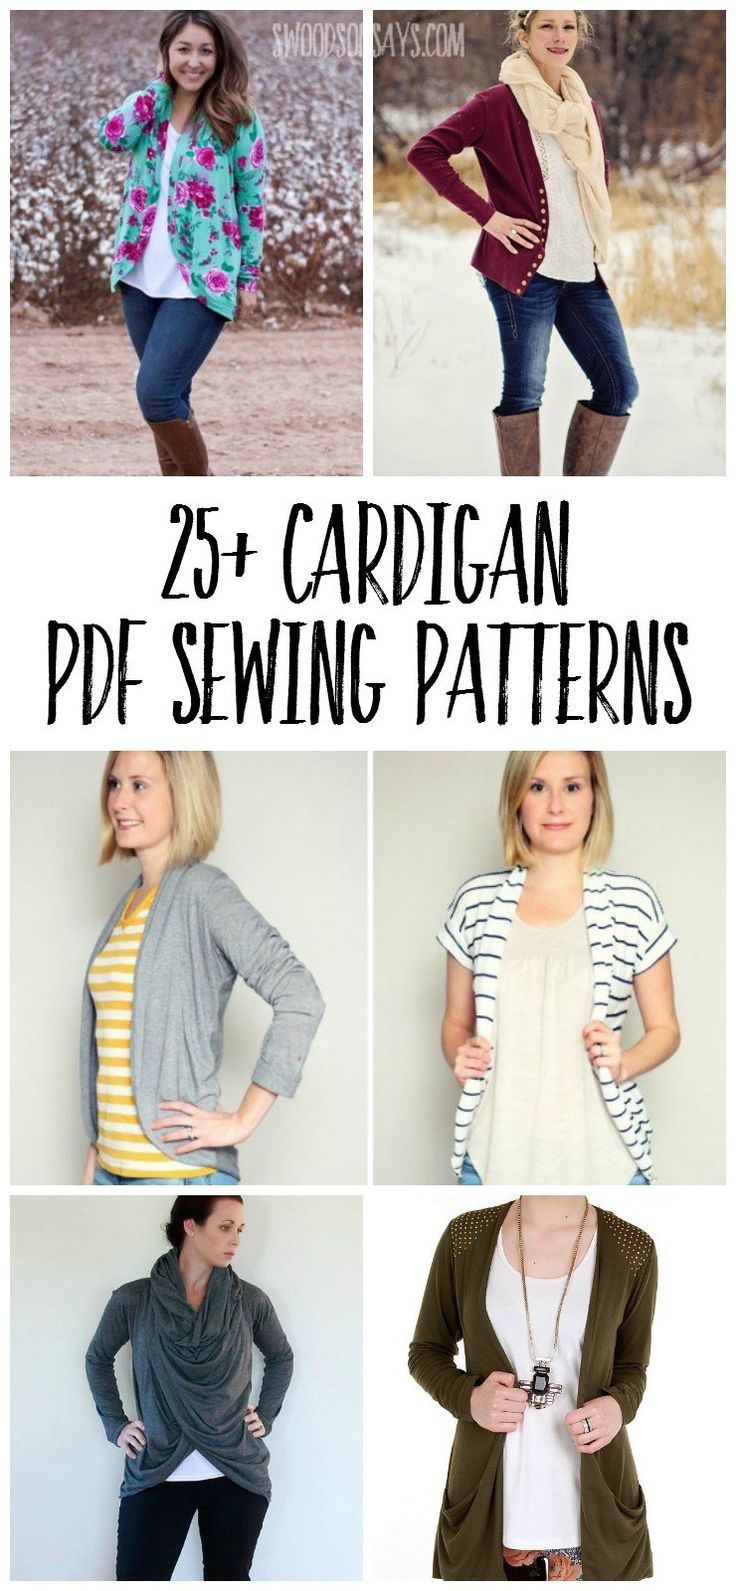 136 best Patterns I want to sew images on Pinterest   Nähideen ...